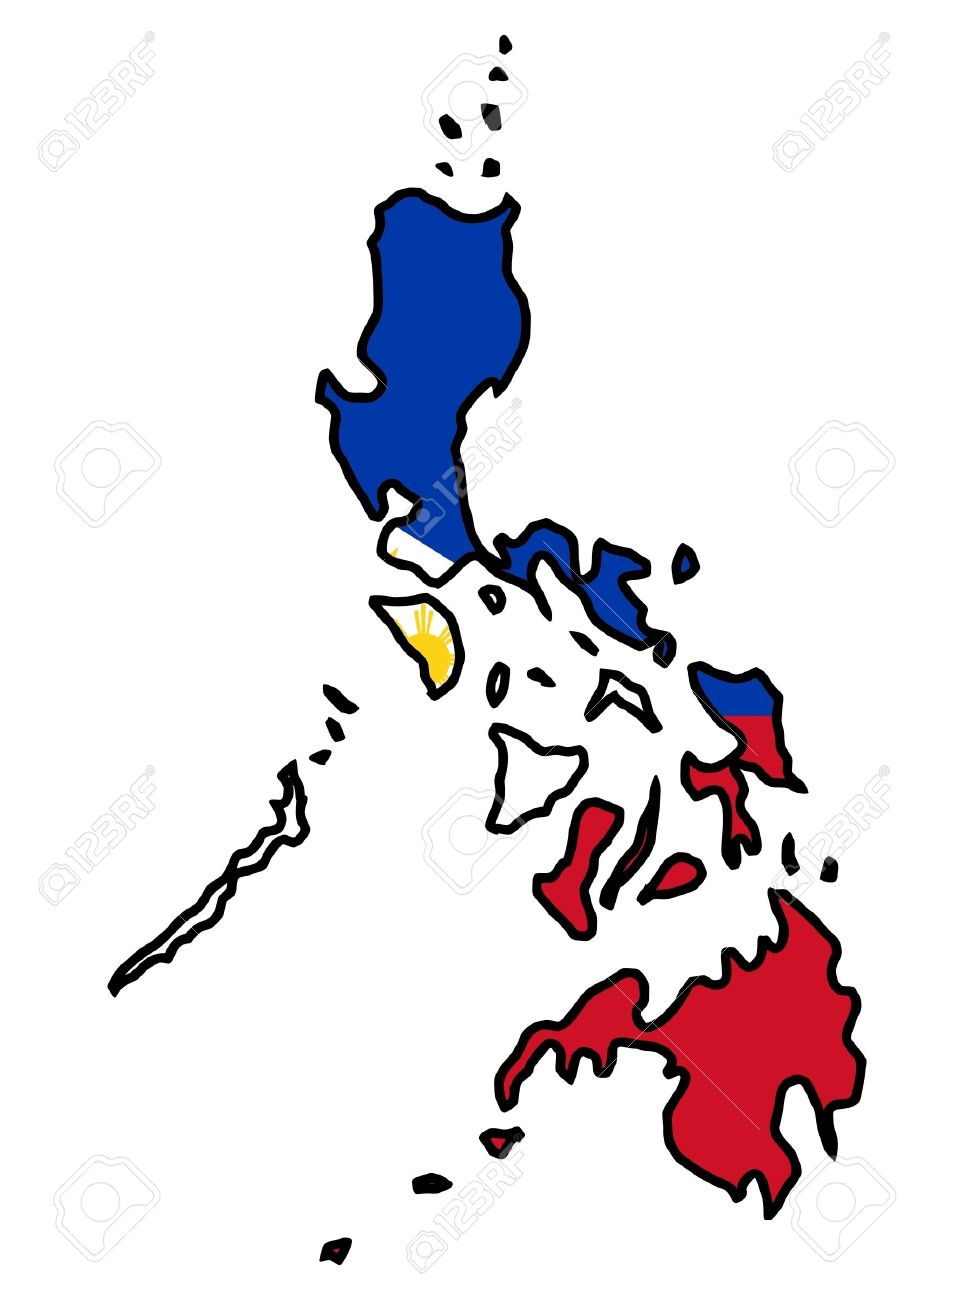 Philippine map clipart 6 » Clipart Station.